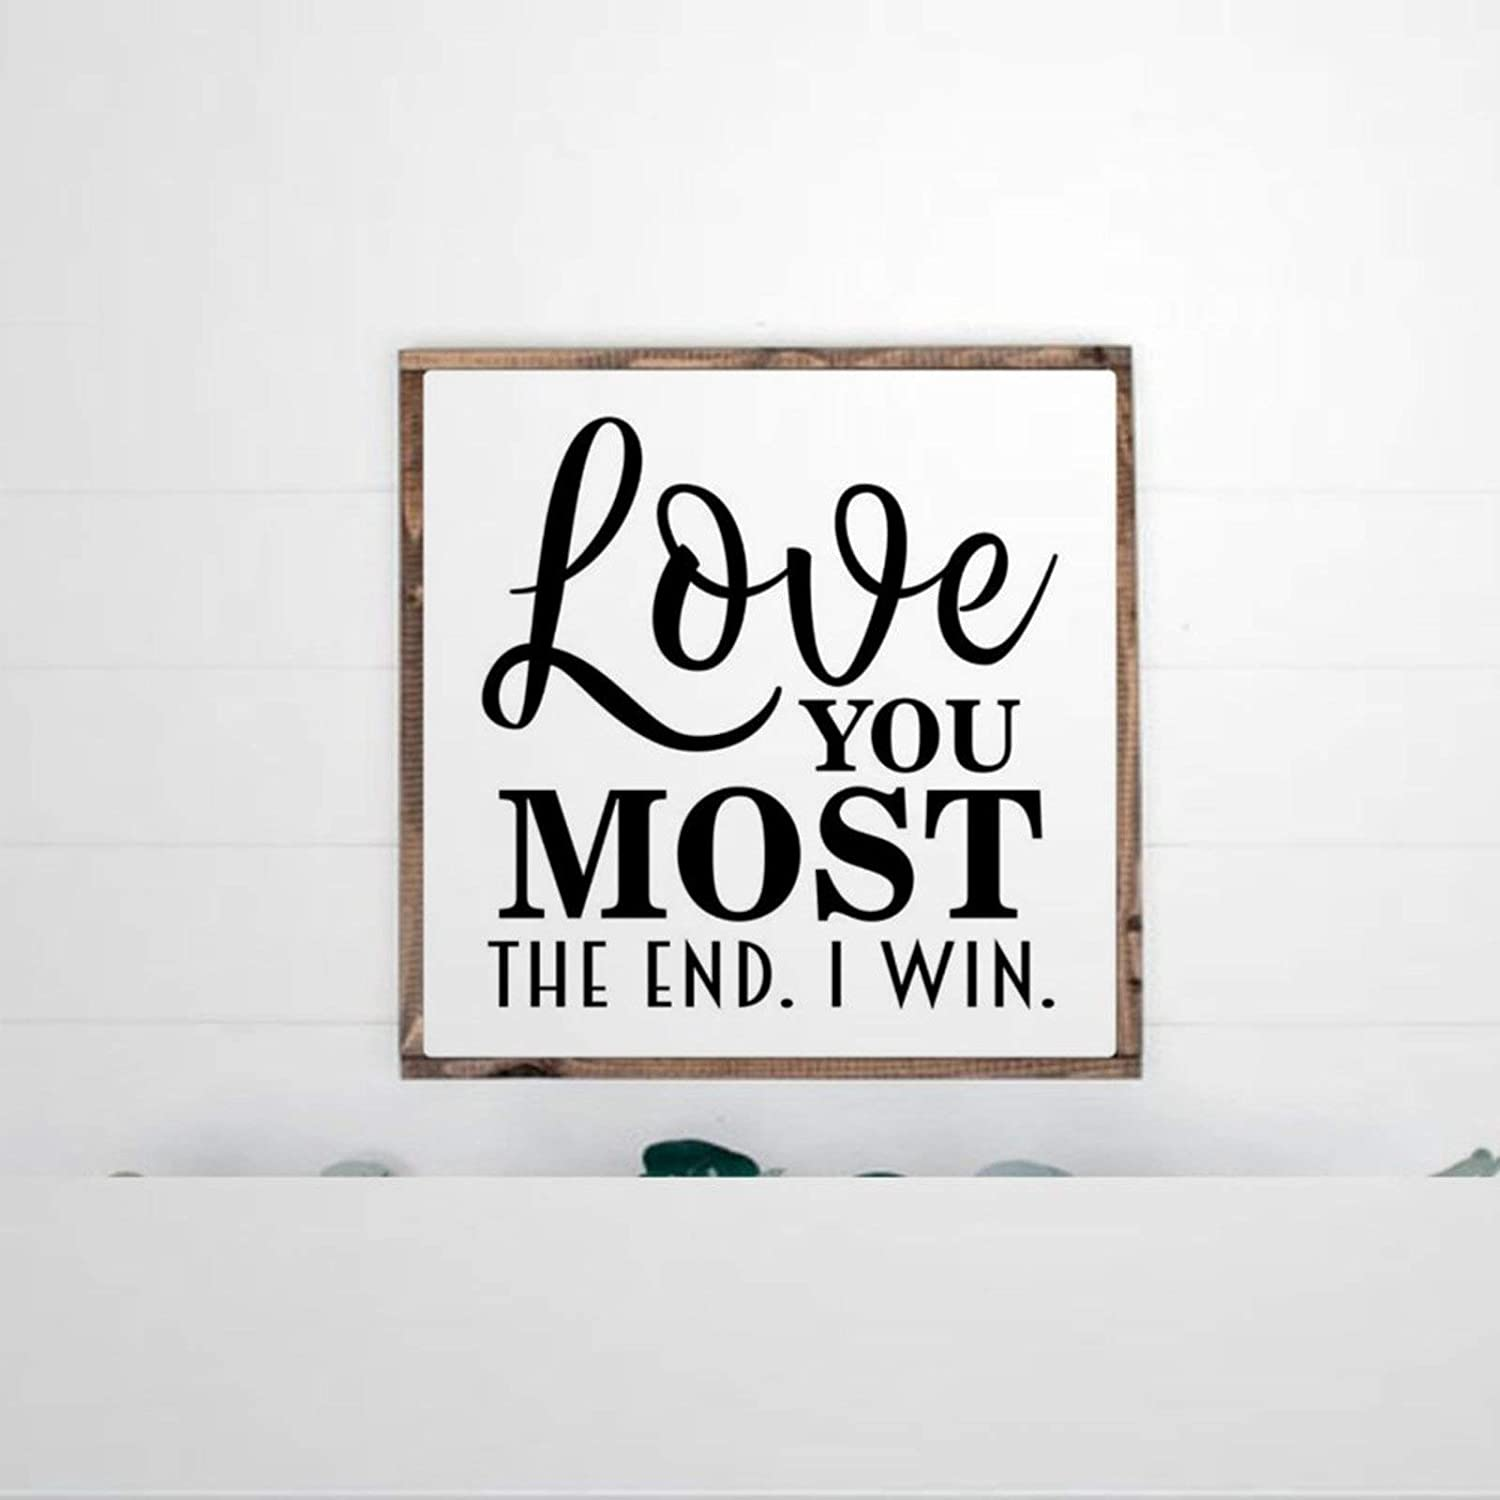 DONL9BAUER Love You Most The End I Win Funny Framed Wooden Sign Wall Hanging Farmhouse Home Decor Wall Art for Living Room